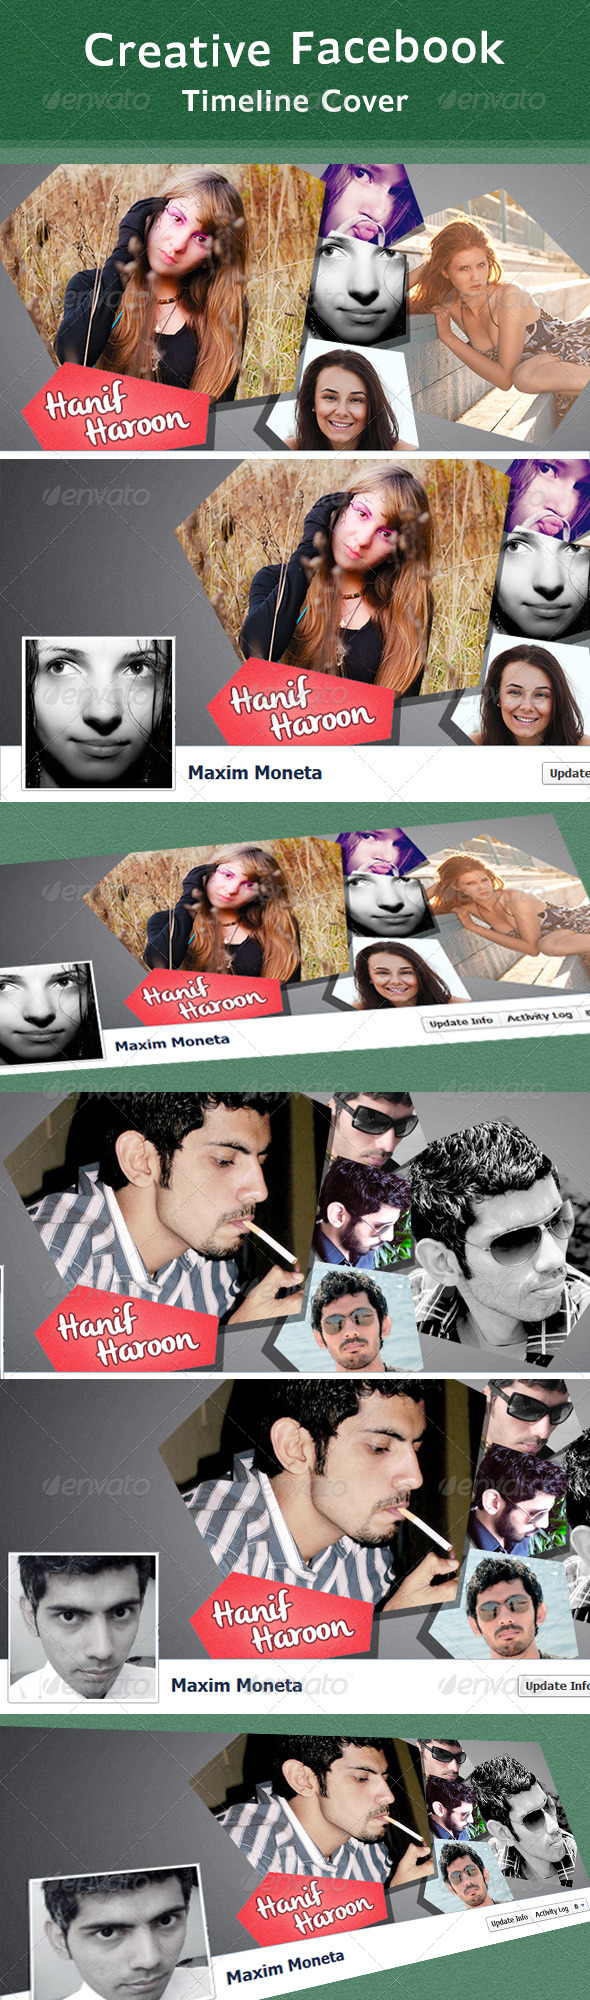 Creative Fb Timeline Cover